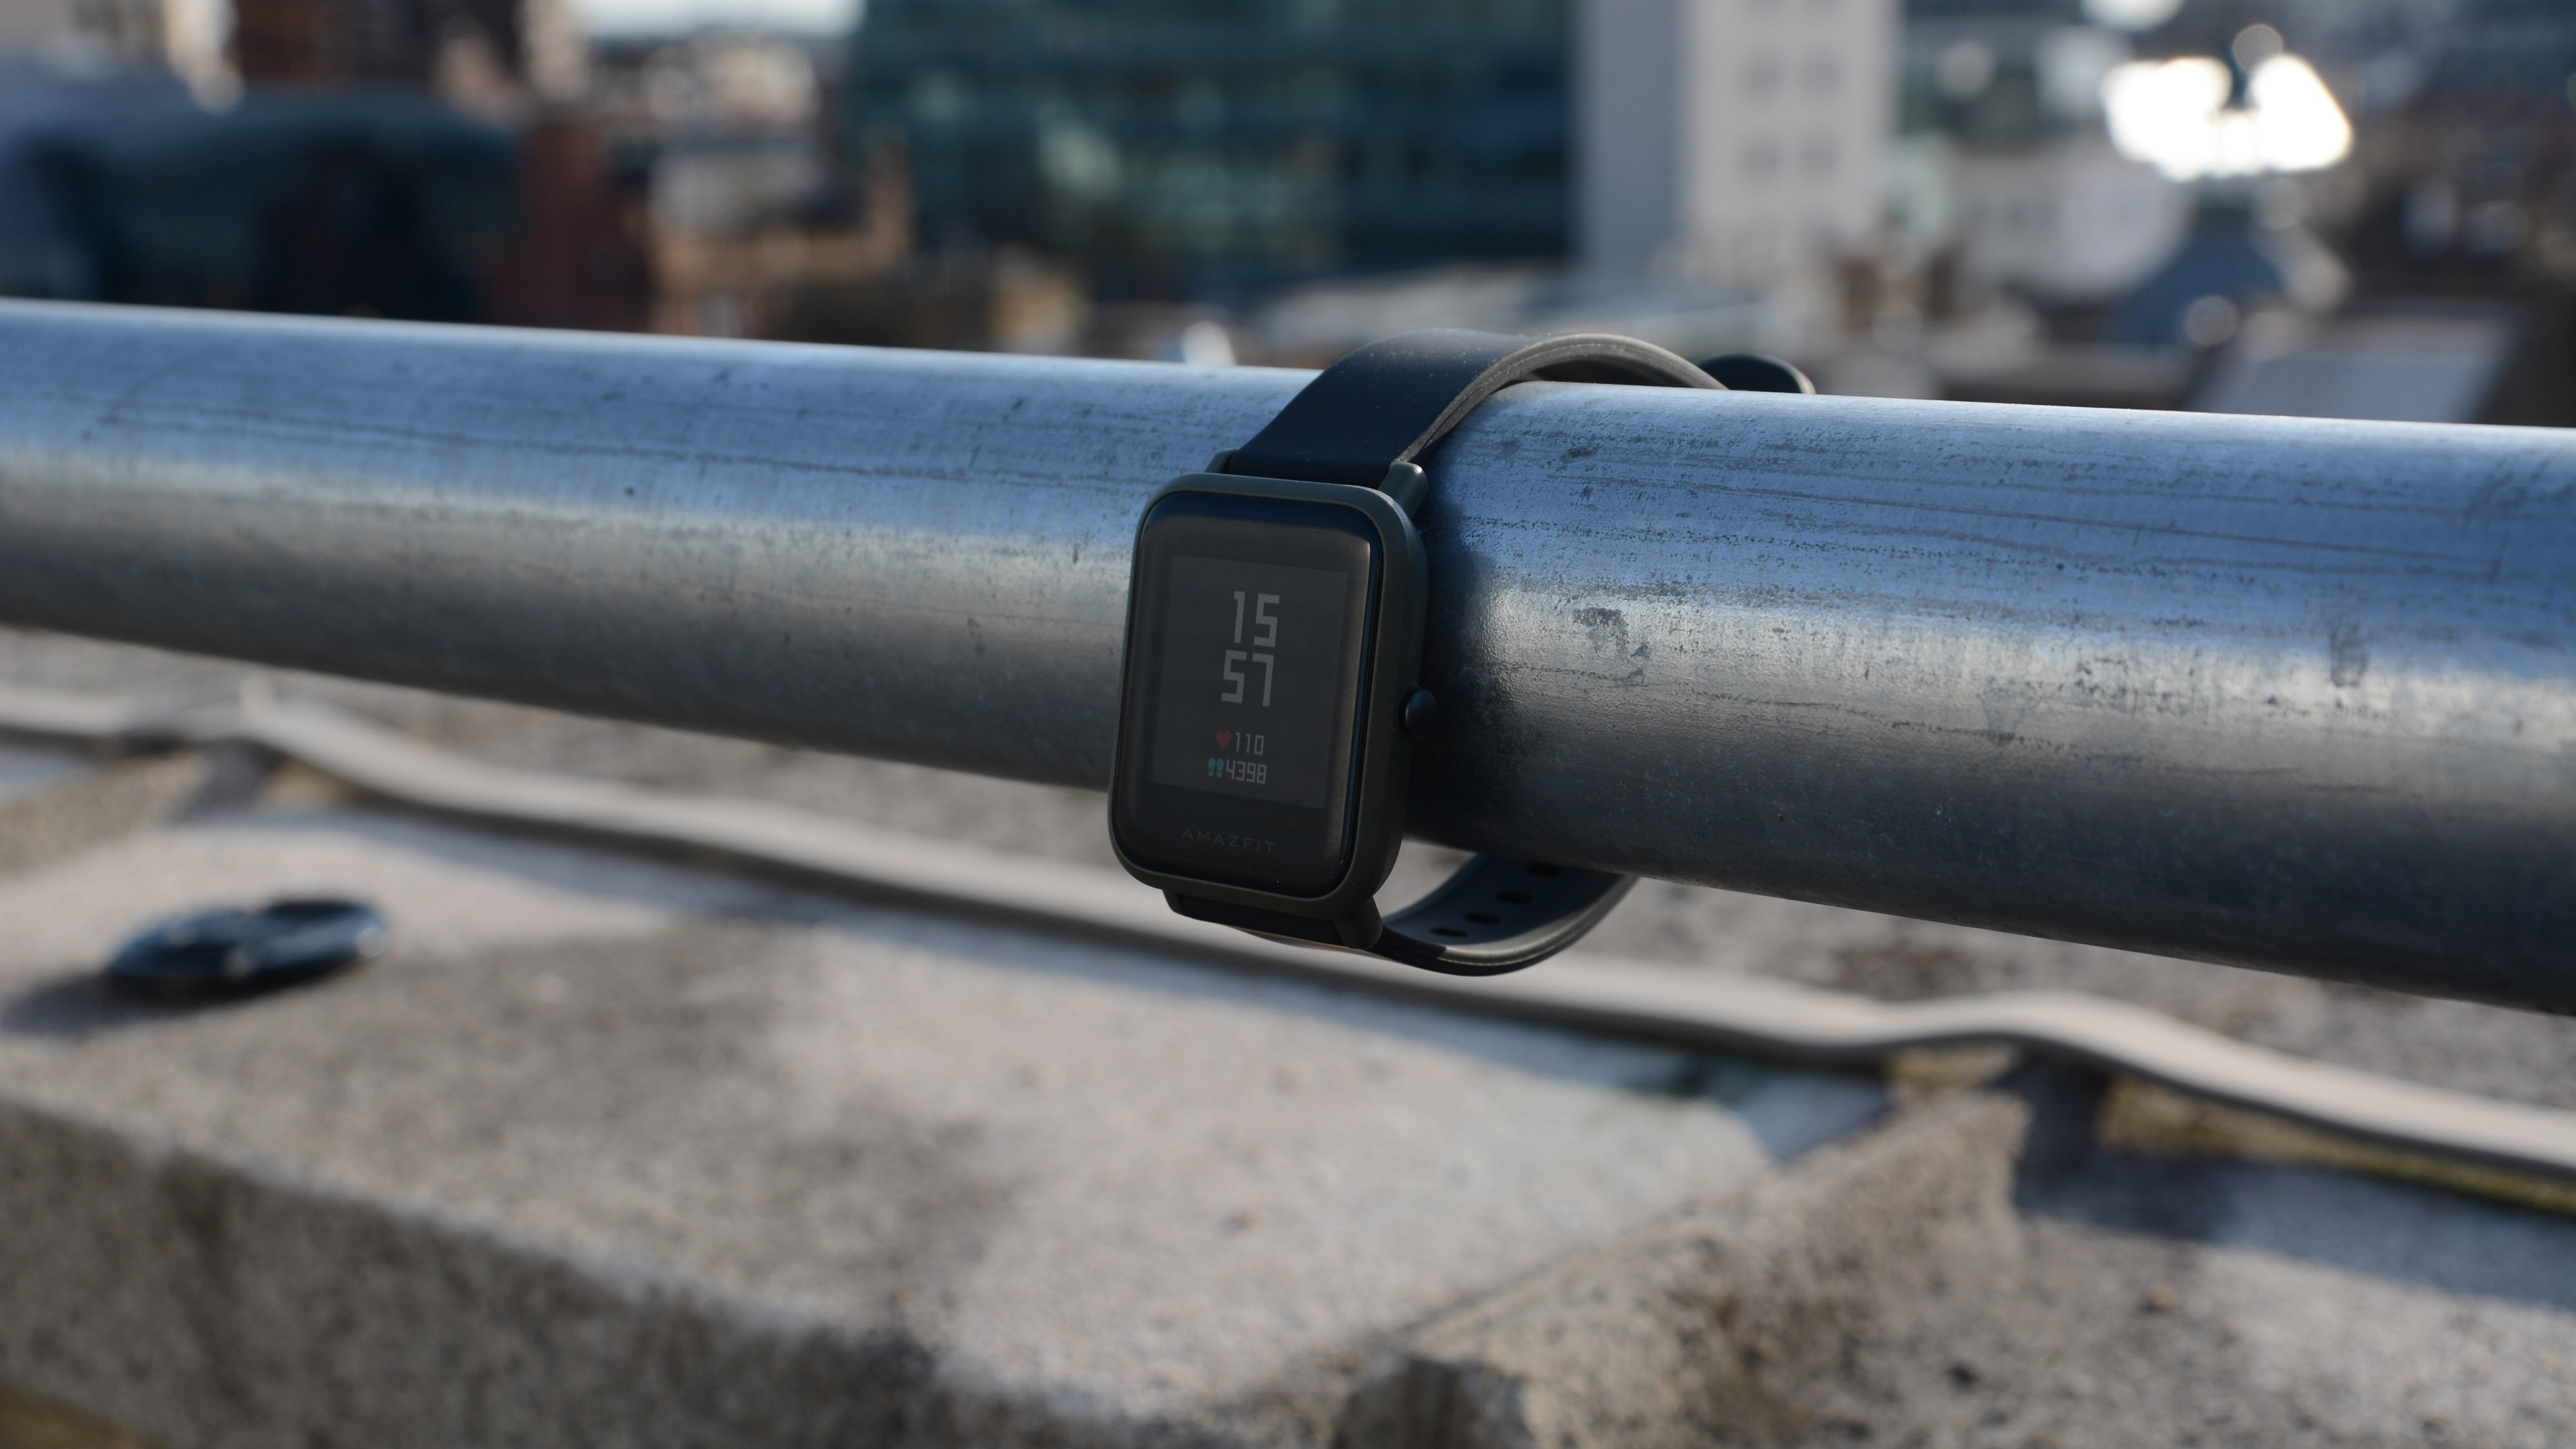 Amazfit Bip review: How good can a £45 smartwatch be